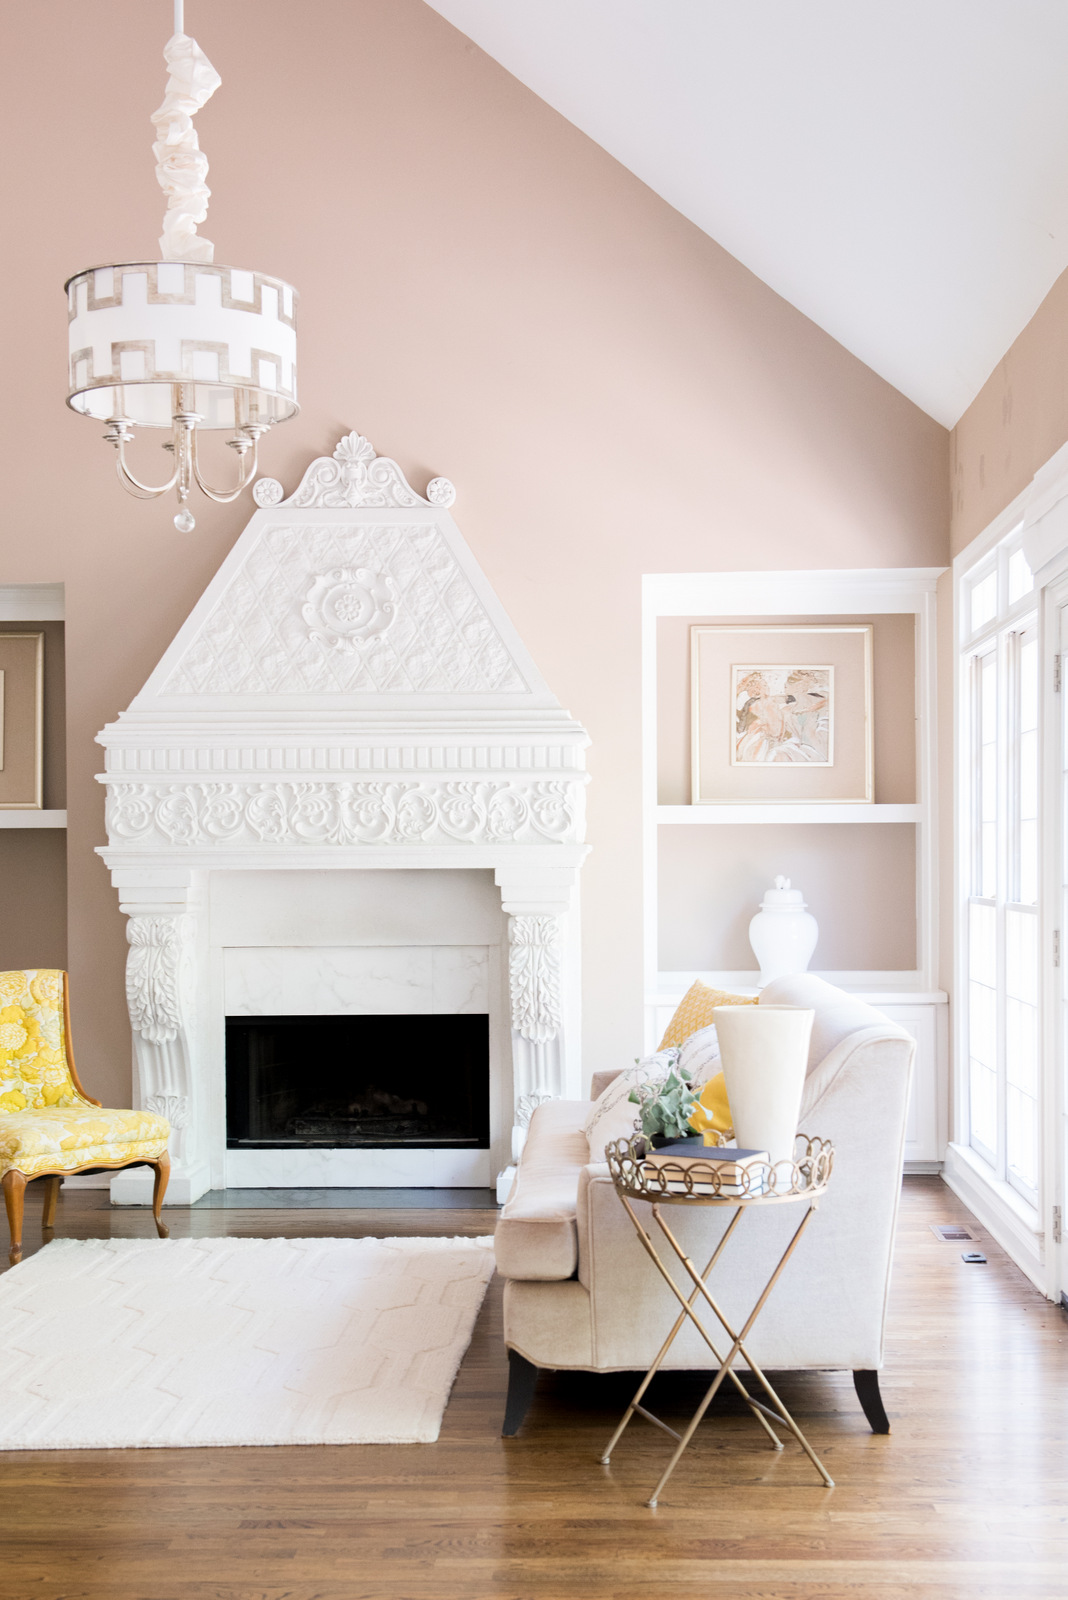 Love It or Leave It? The VERY ornate Fireplace